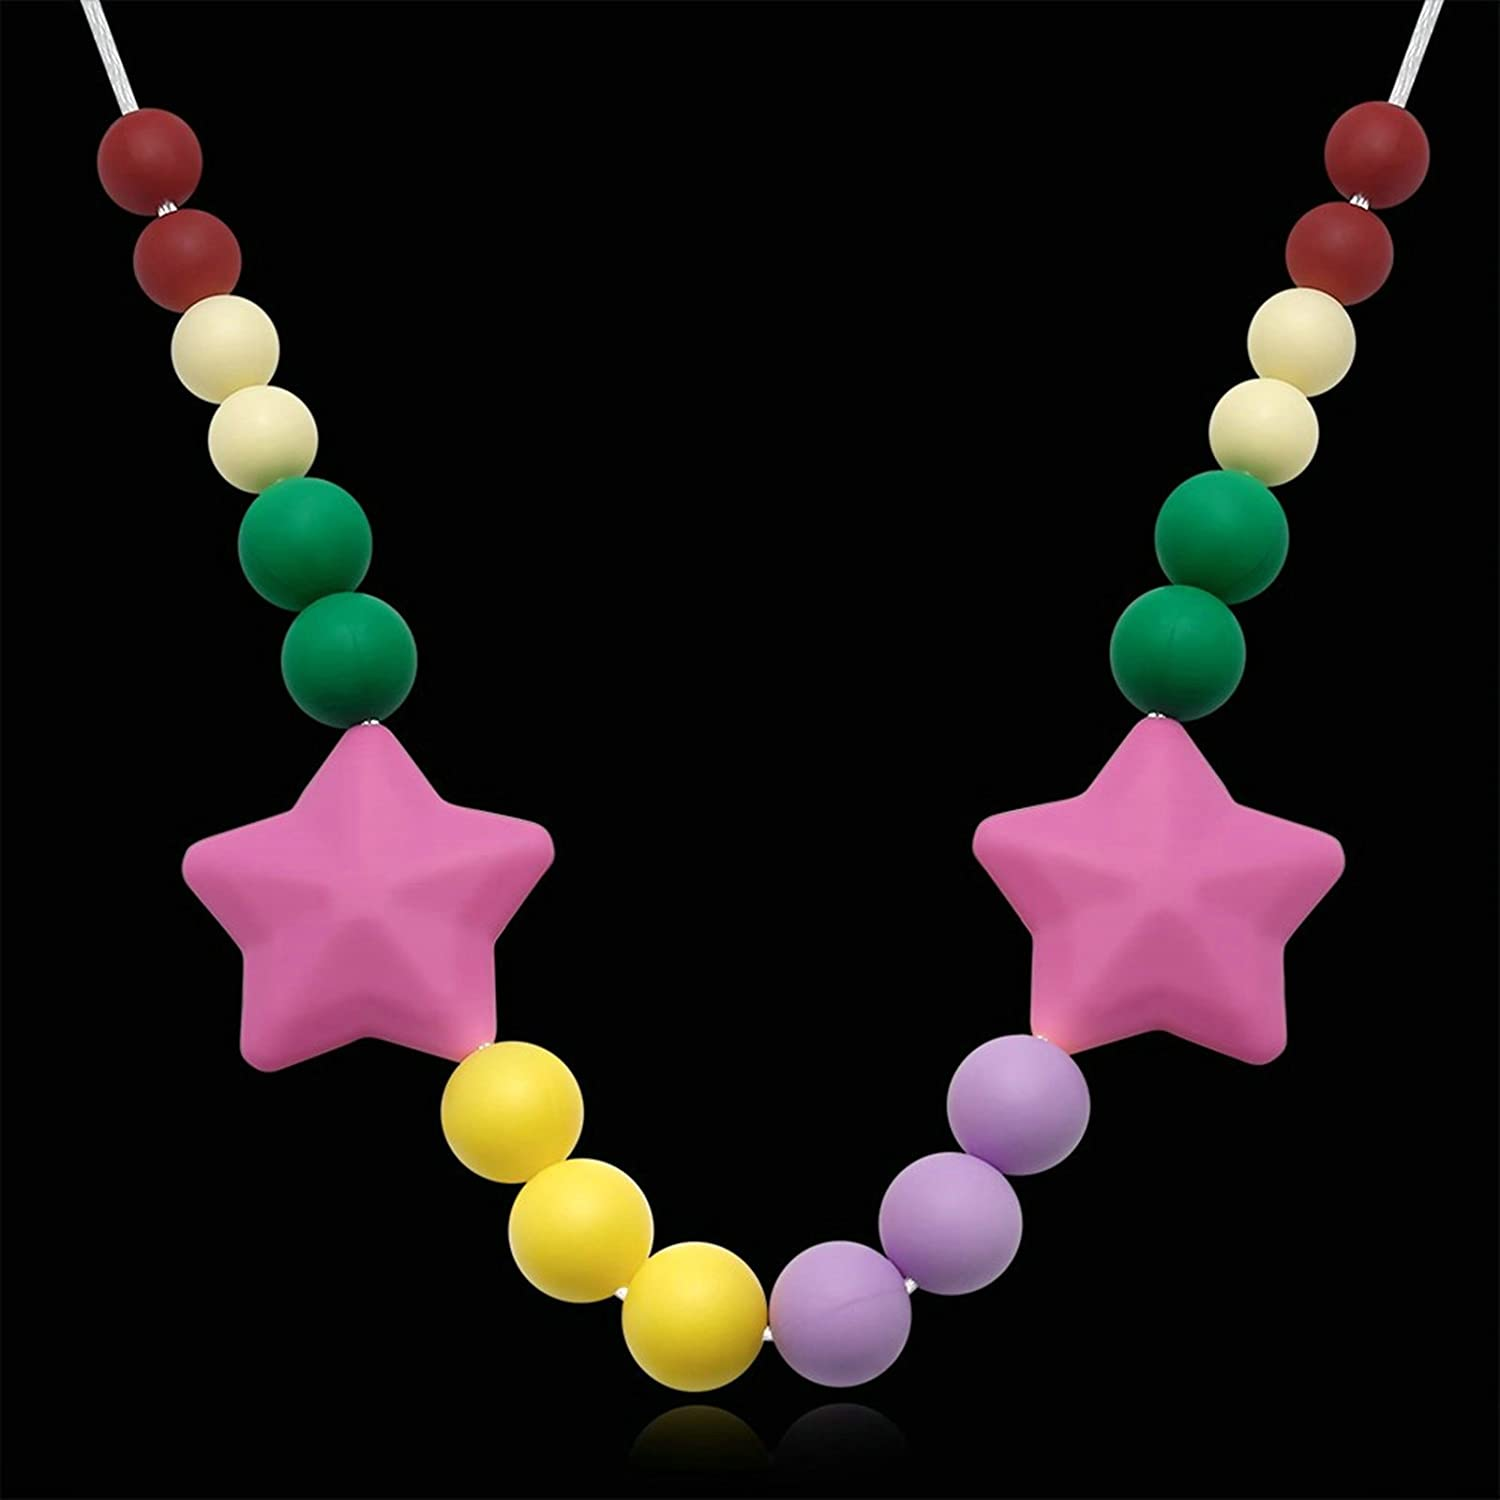 ANAZOZ Silicone Teething Necklace for Mom Colorful Beads and Stars Teething Pain Reduce Necklace for Baby